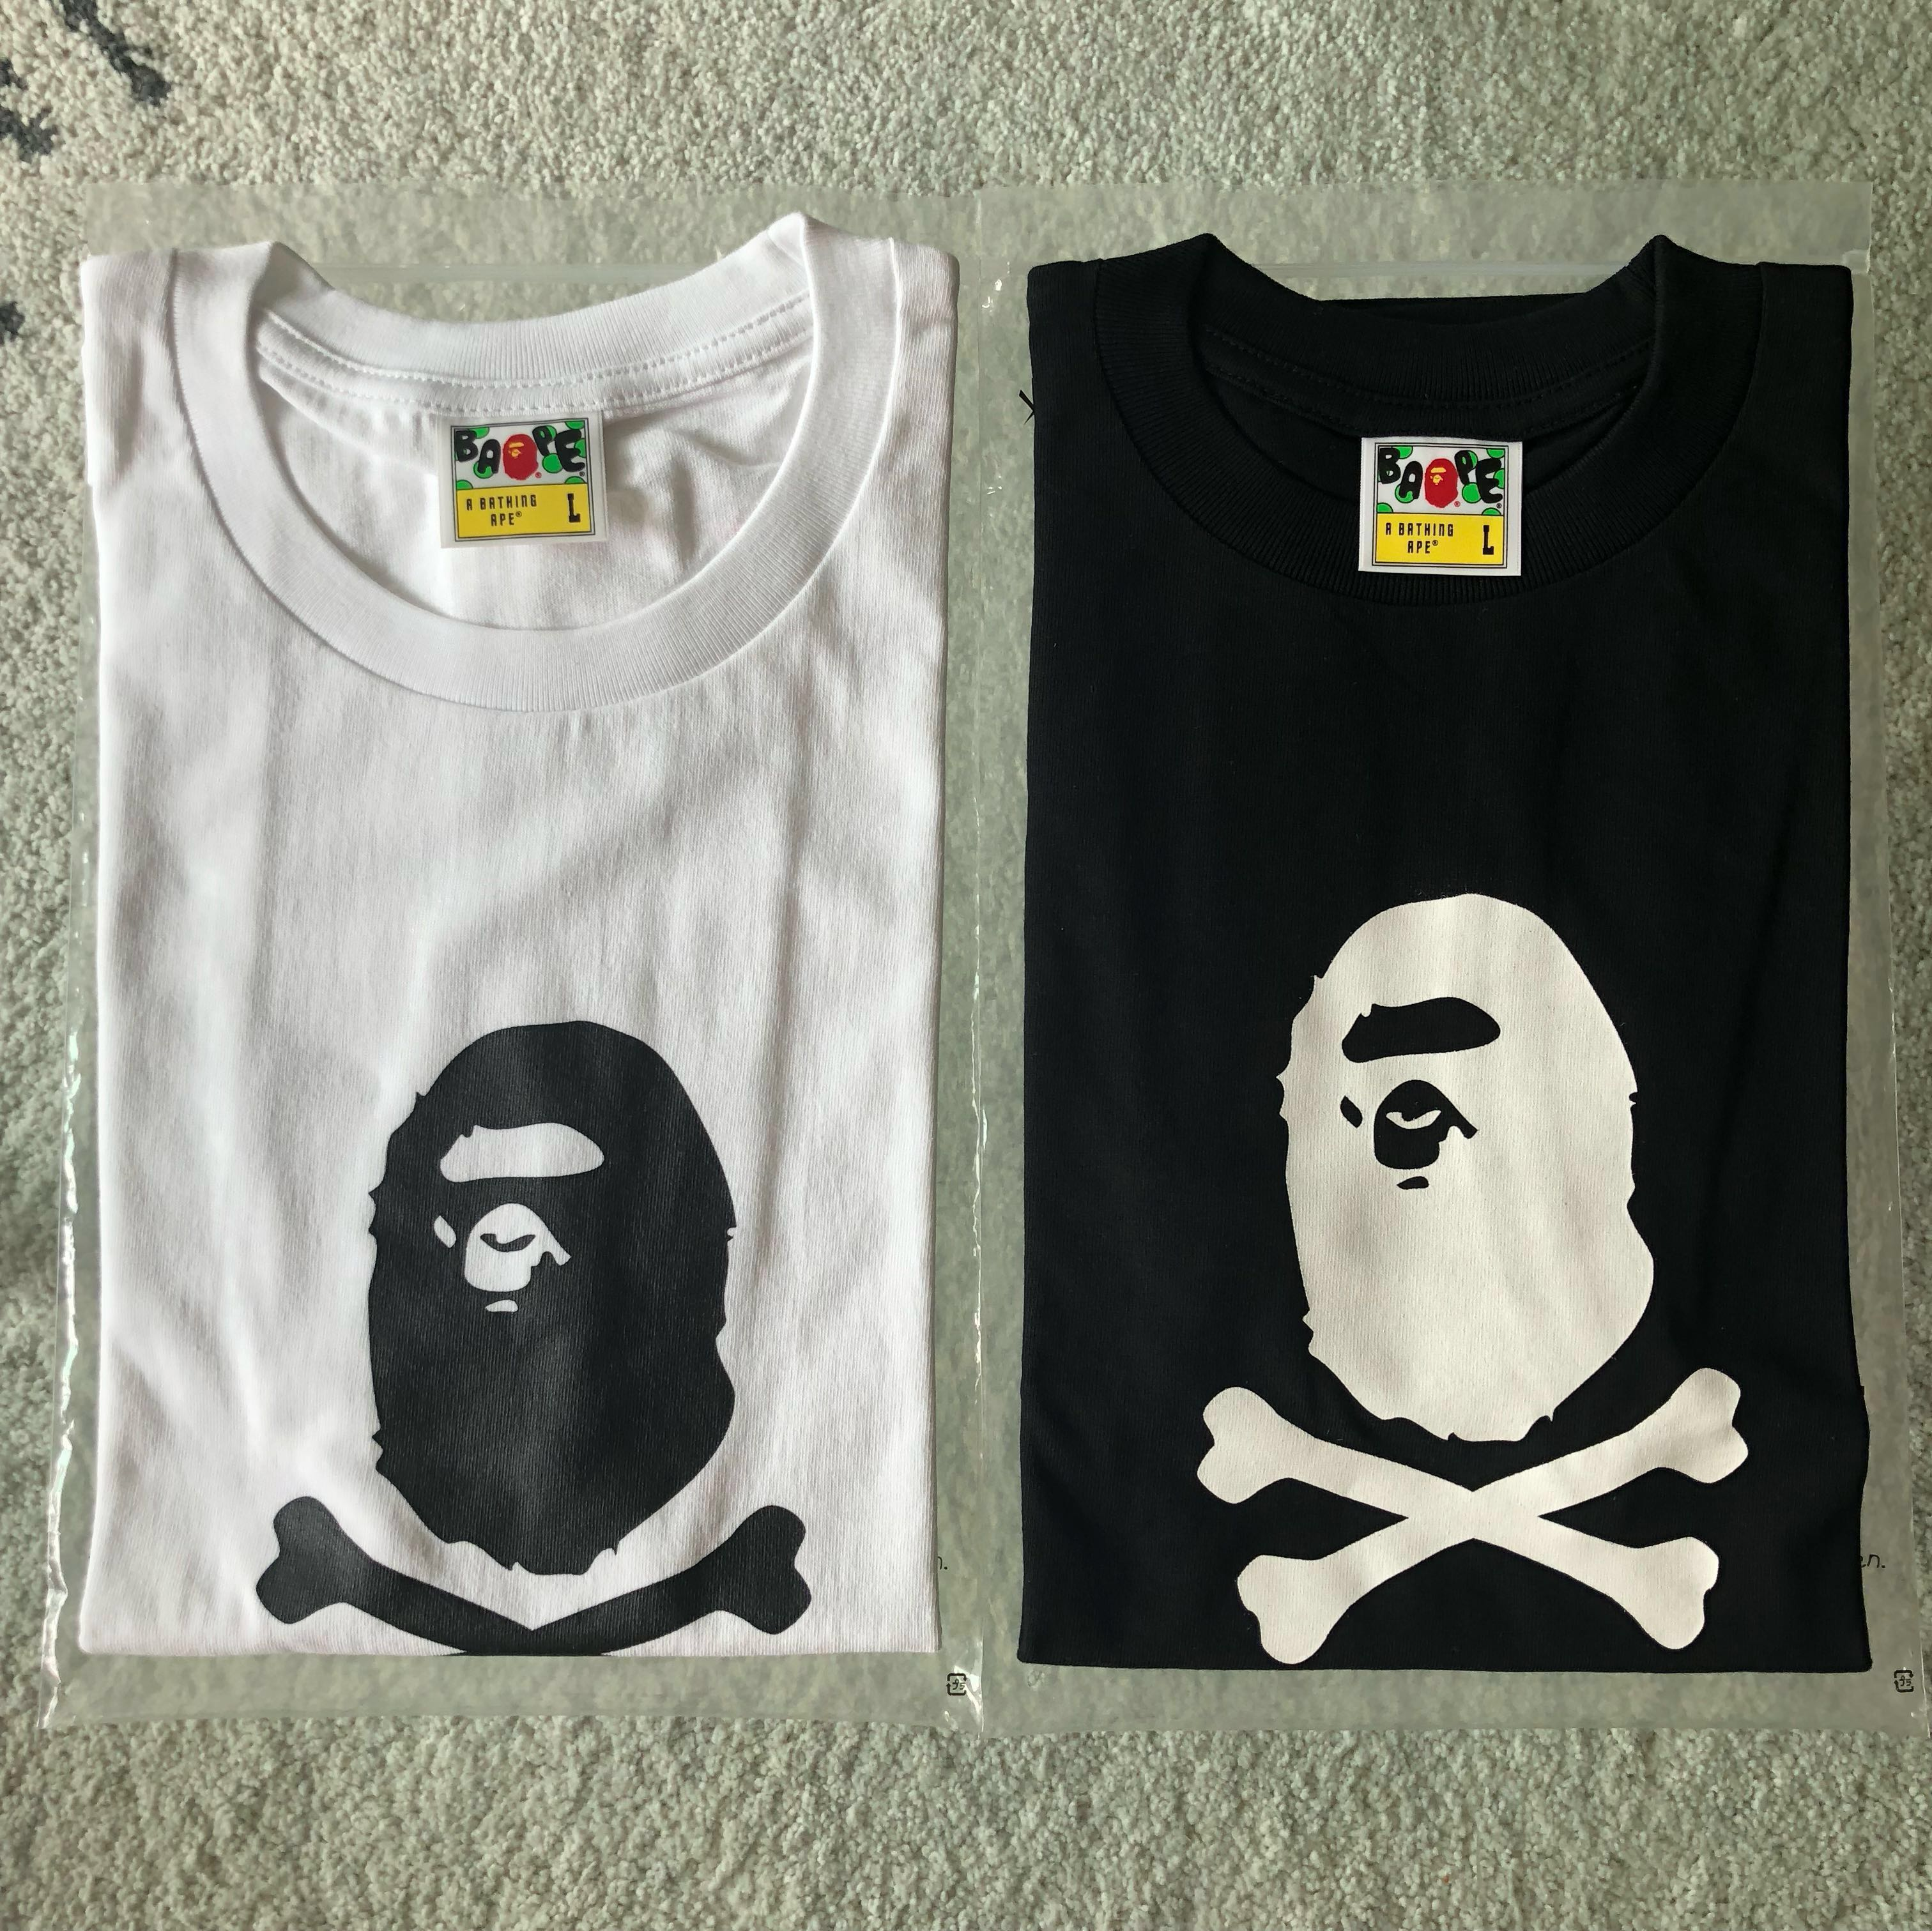 06f571c40 BAPE PIRATE APE HEAD CROSSBONE TEE, Men's Fashion, Clothes, Tops on  Carousell